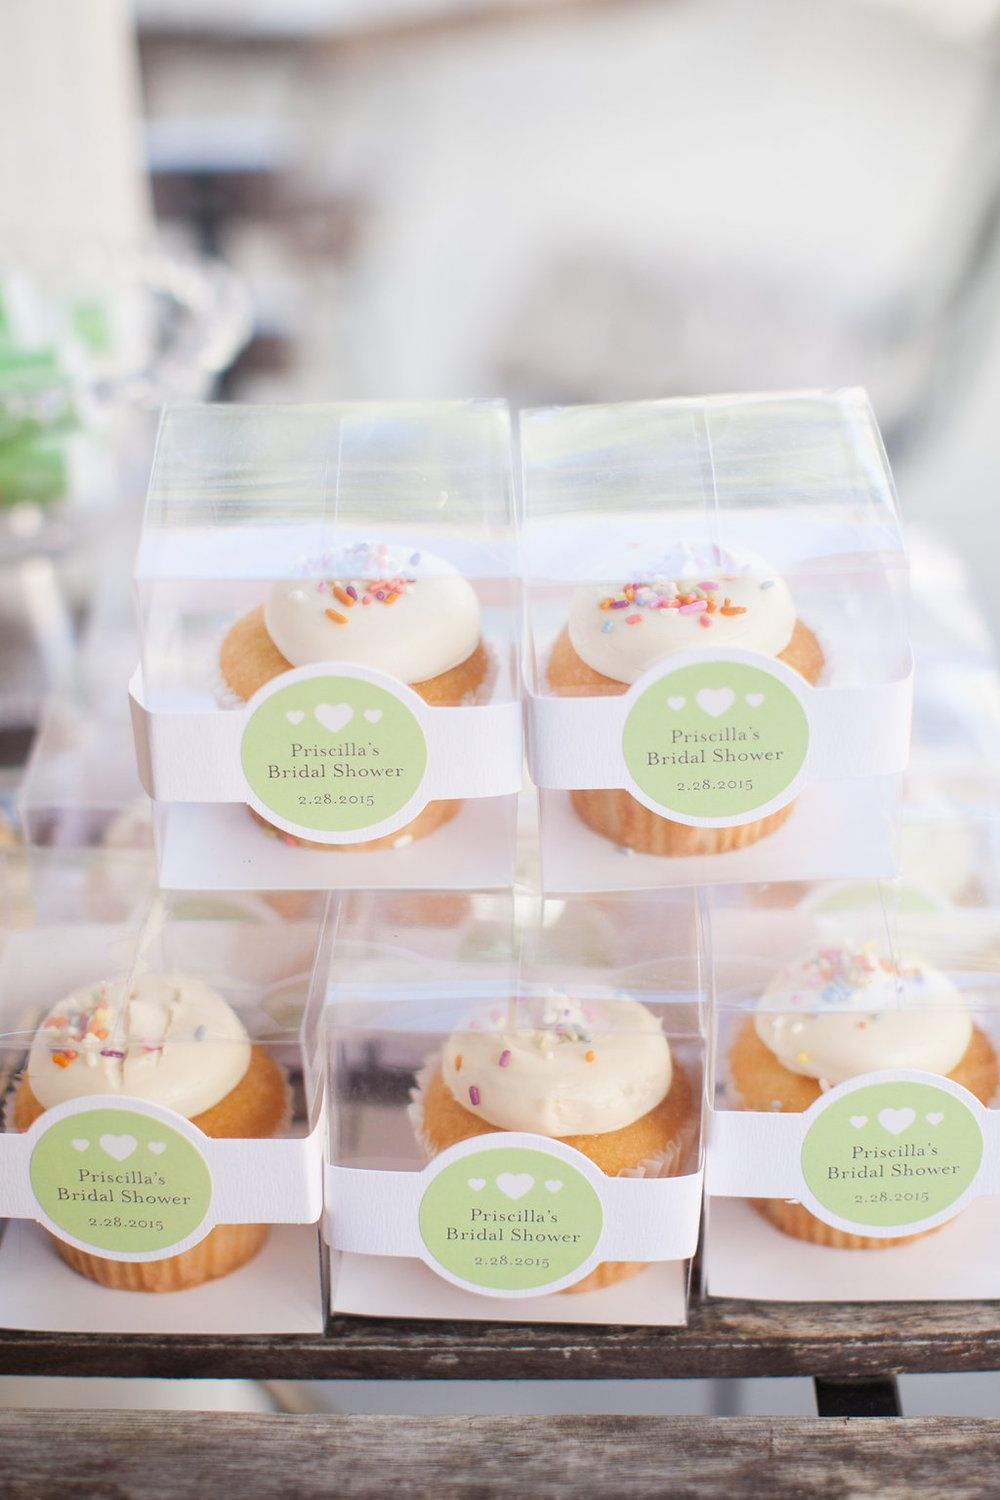 Pin by Favor Couture The Aspen Shops on Wedding Favors | Pinterest ...